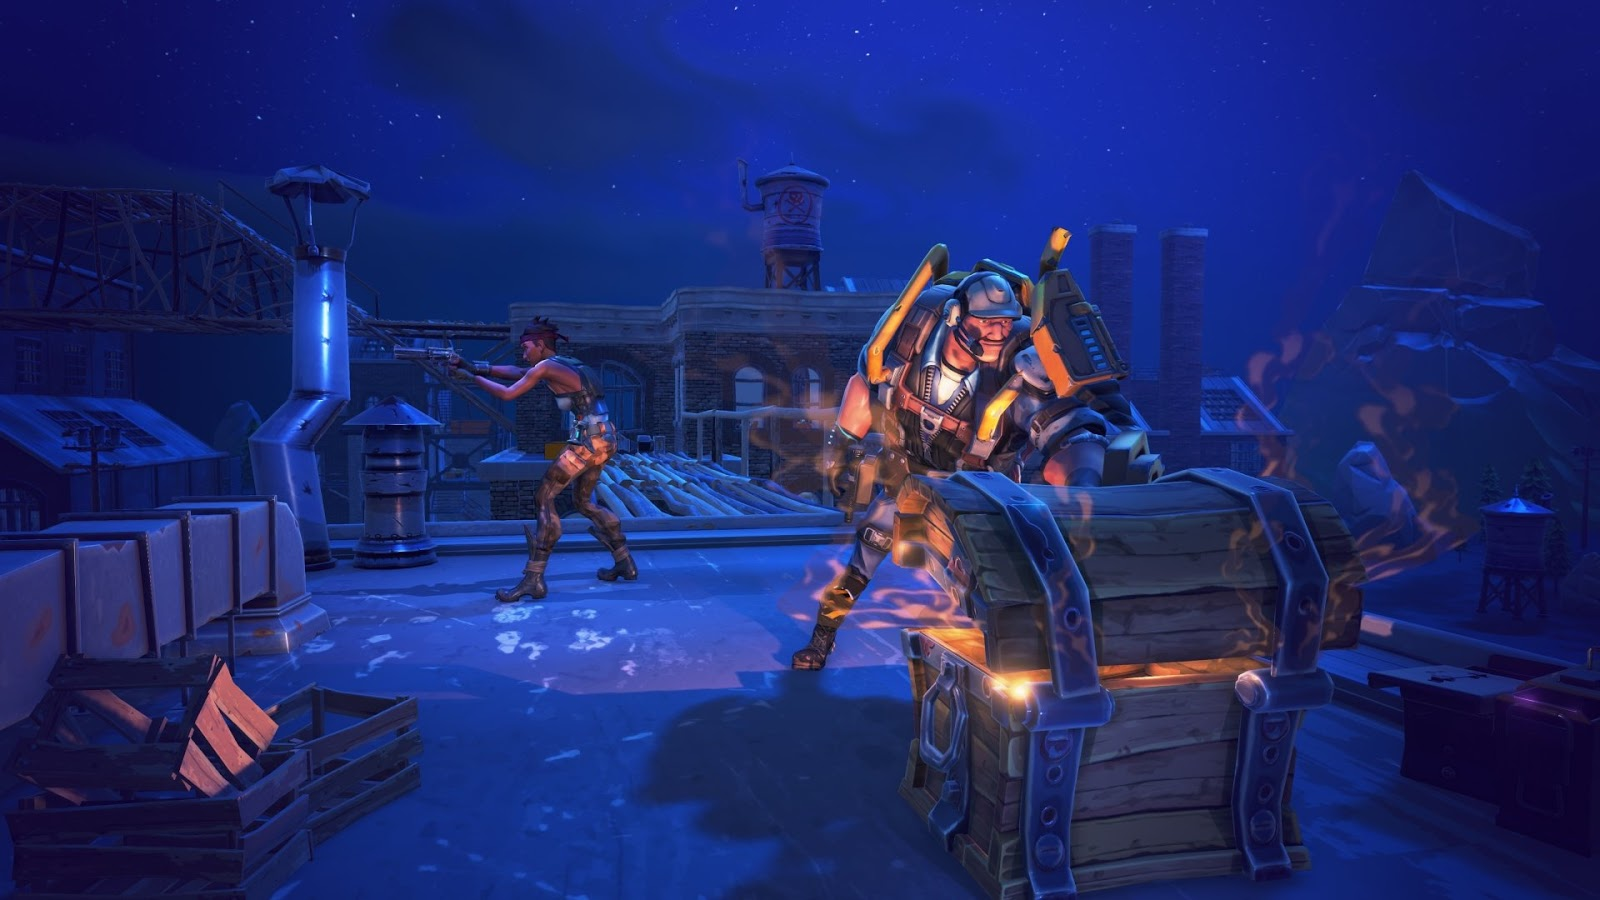 Fortnite Computer Wallpaper 62260 1600x900 px 1600x900